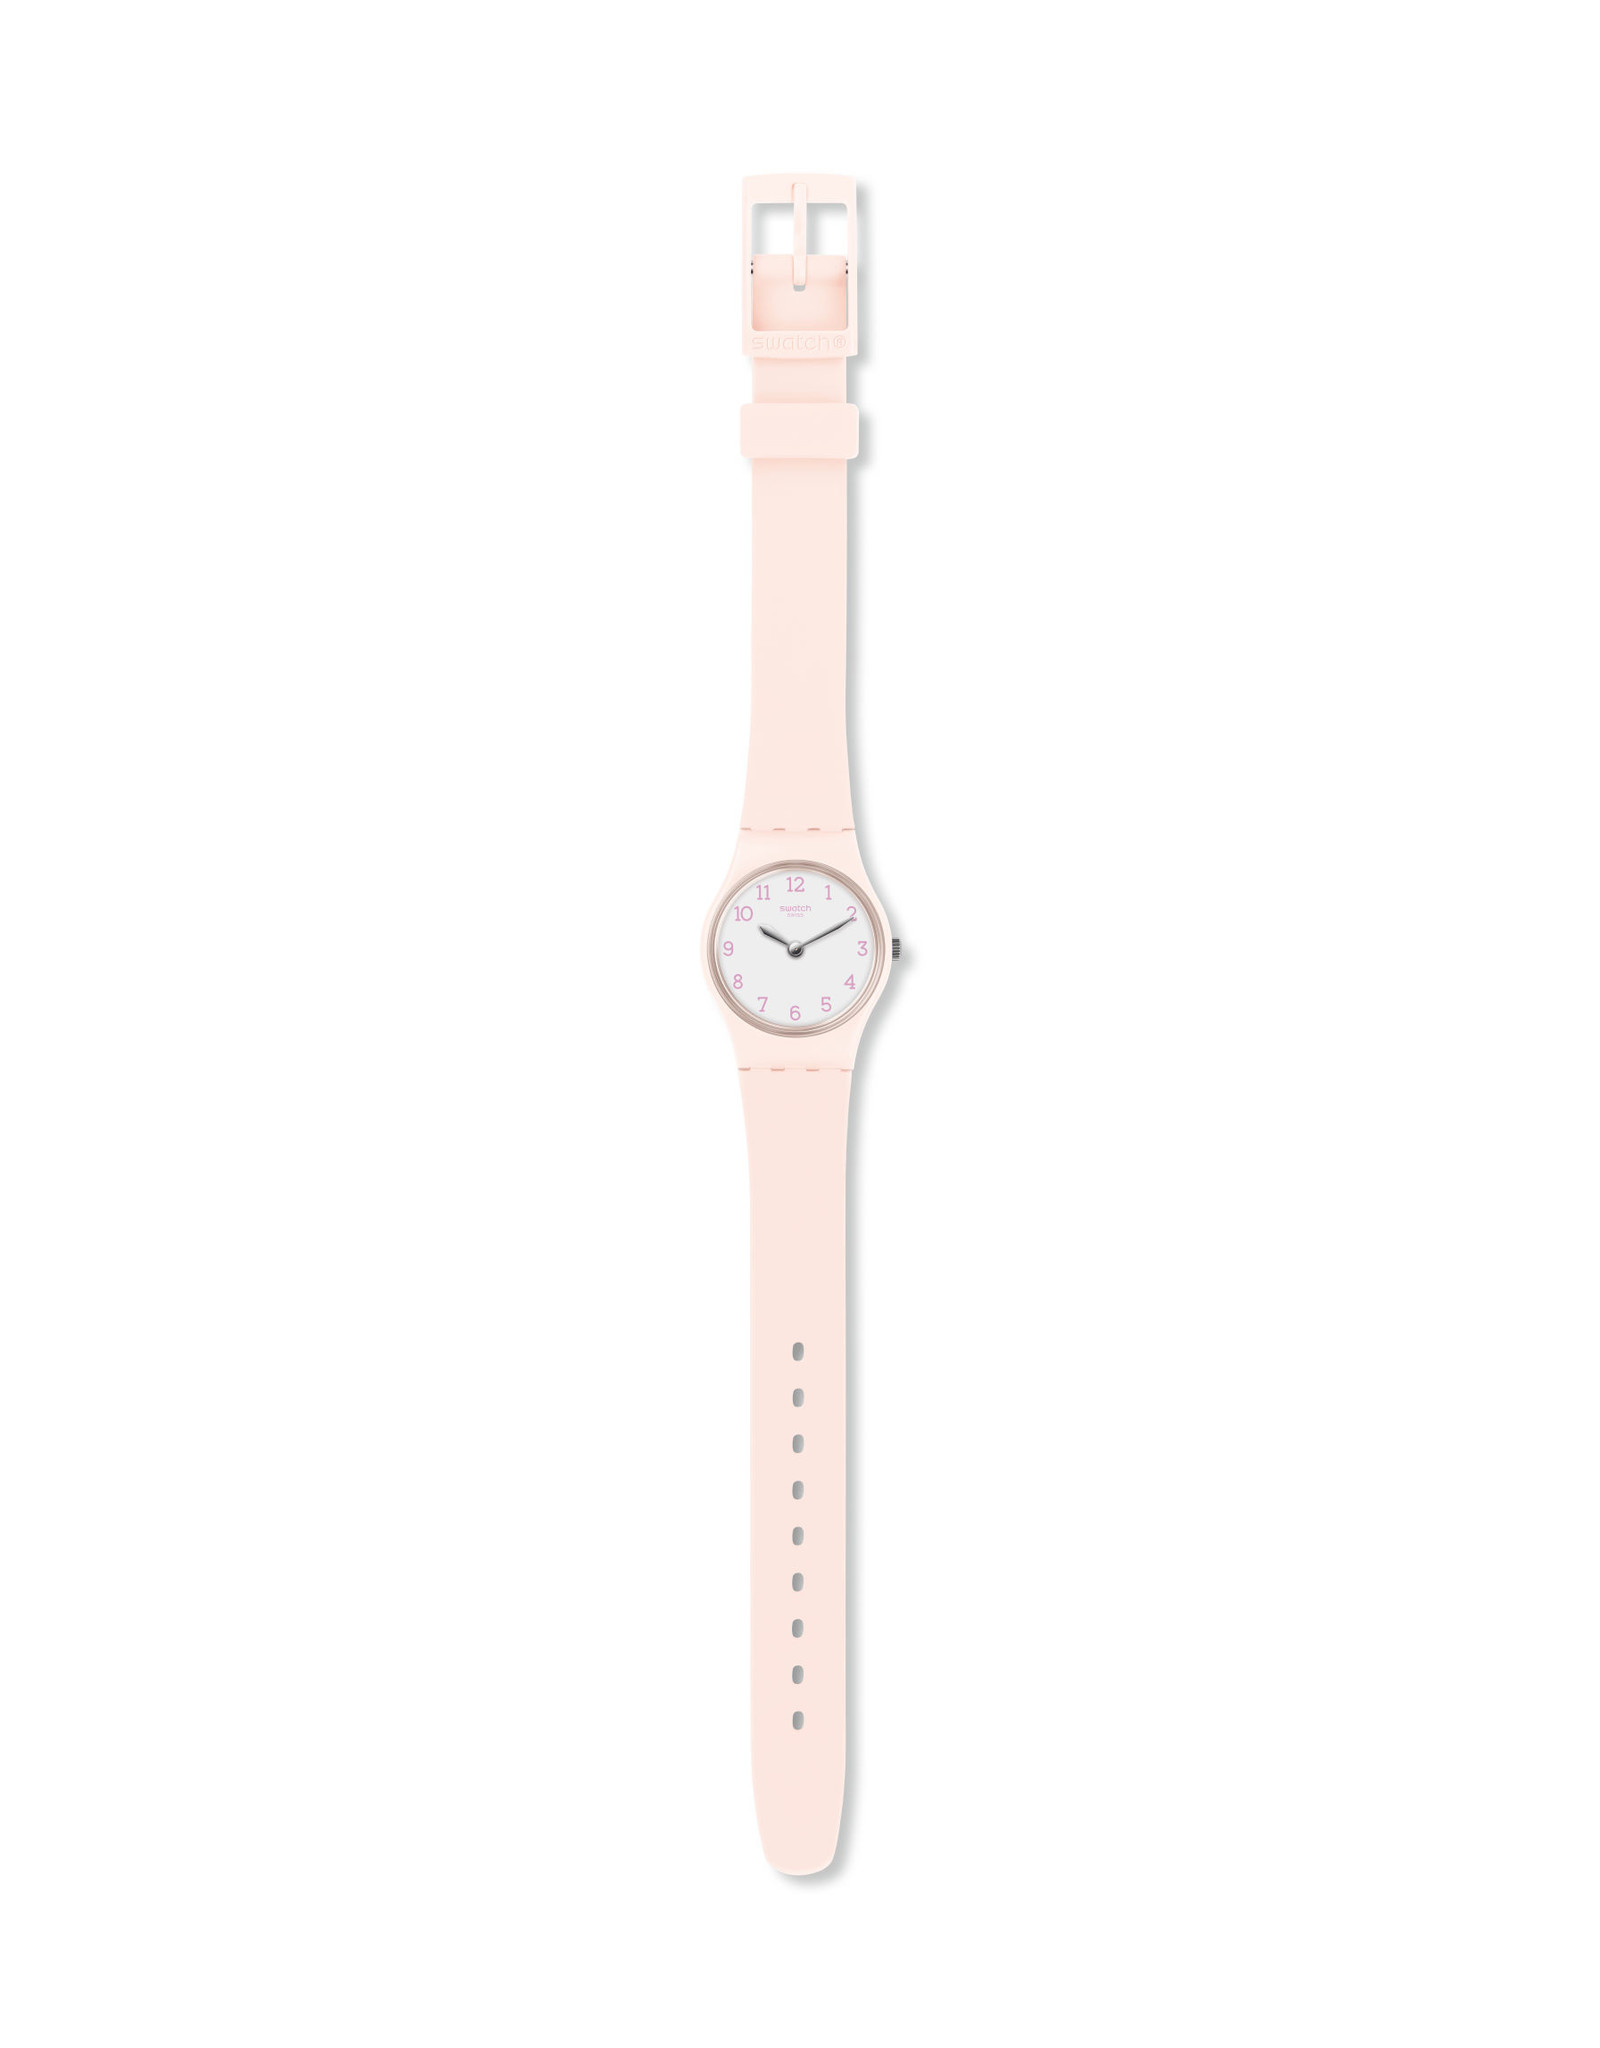 Swatch Swatch LP150 PINKBELLE